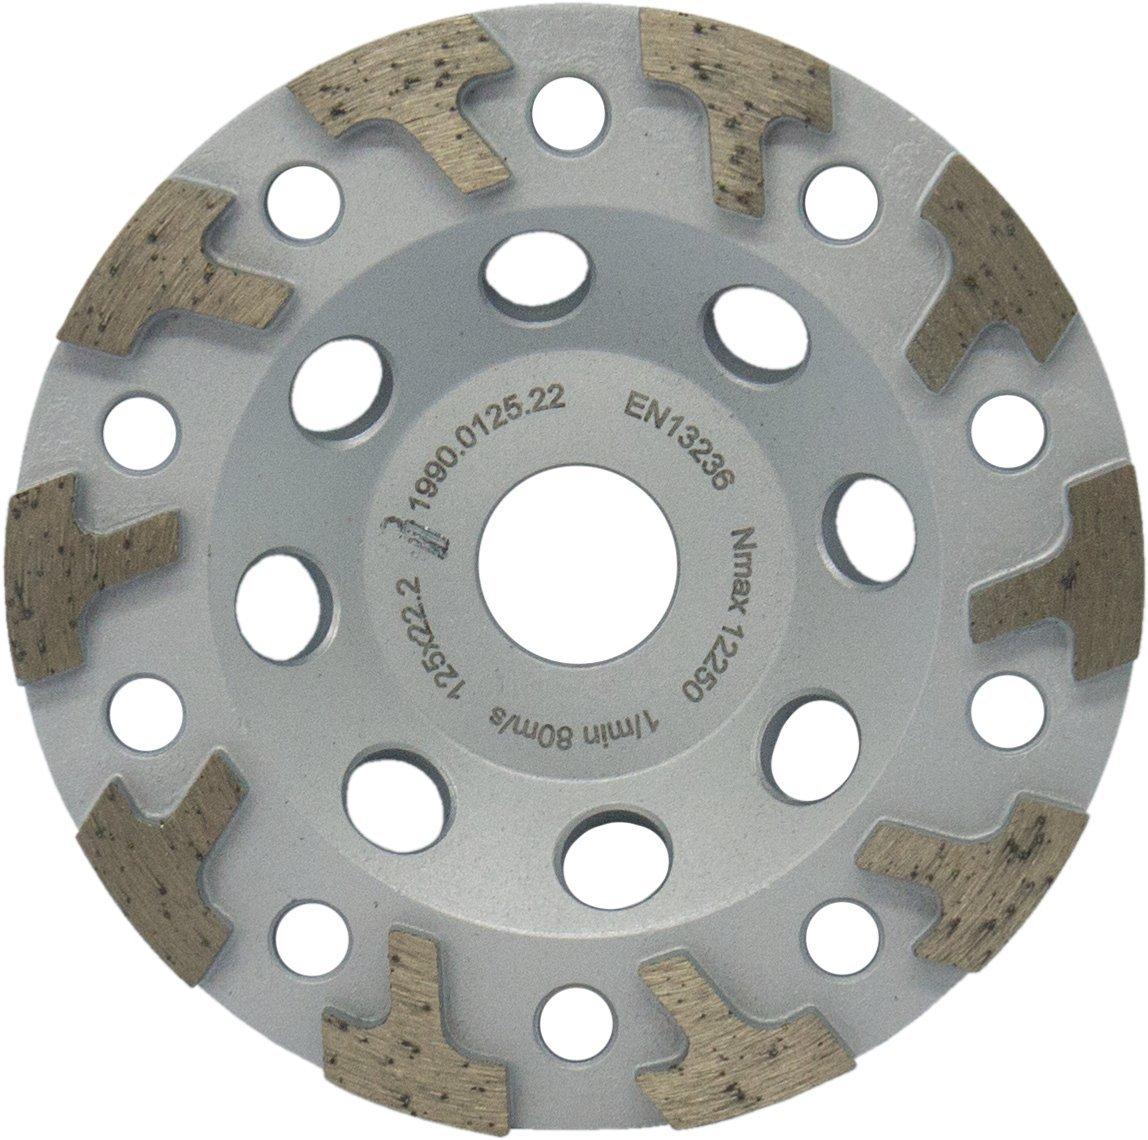 MARCRIST Diamond cup wheel HU850 125 mm x 22.2 universal grinding disc